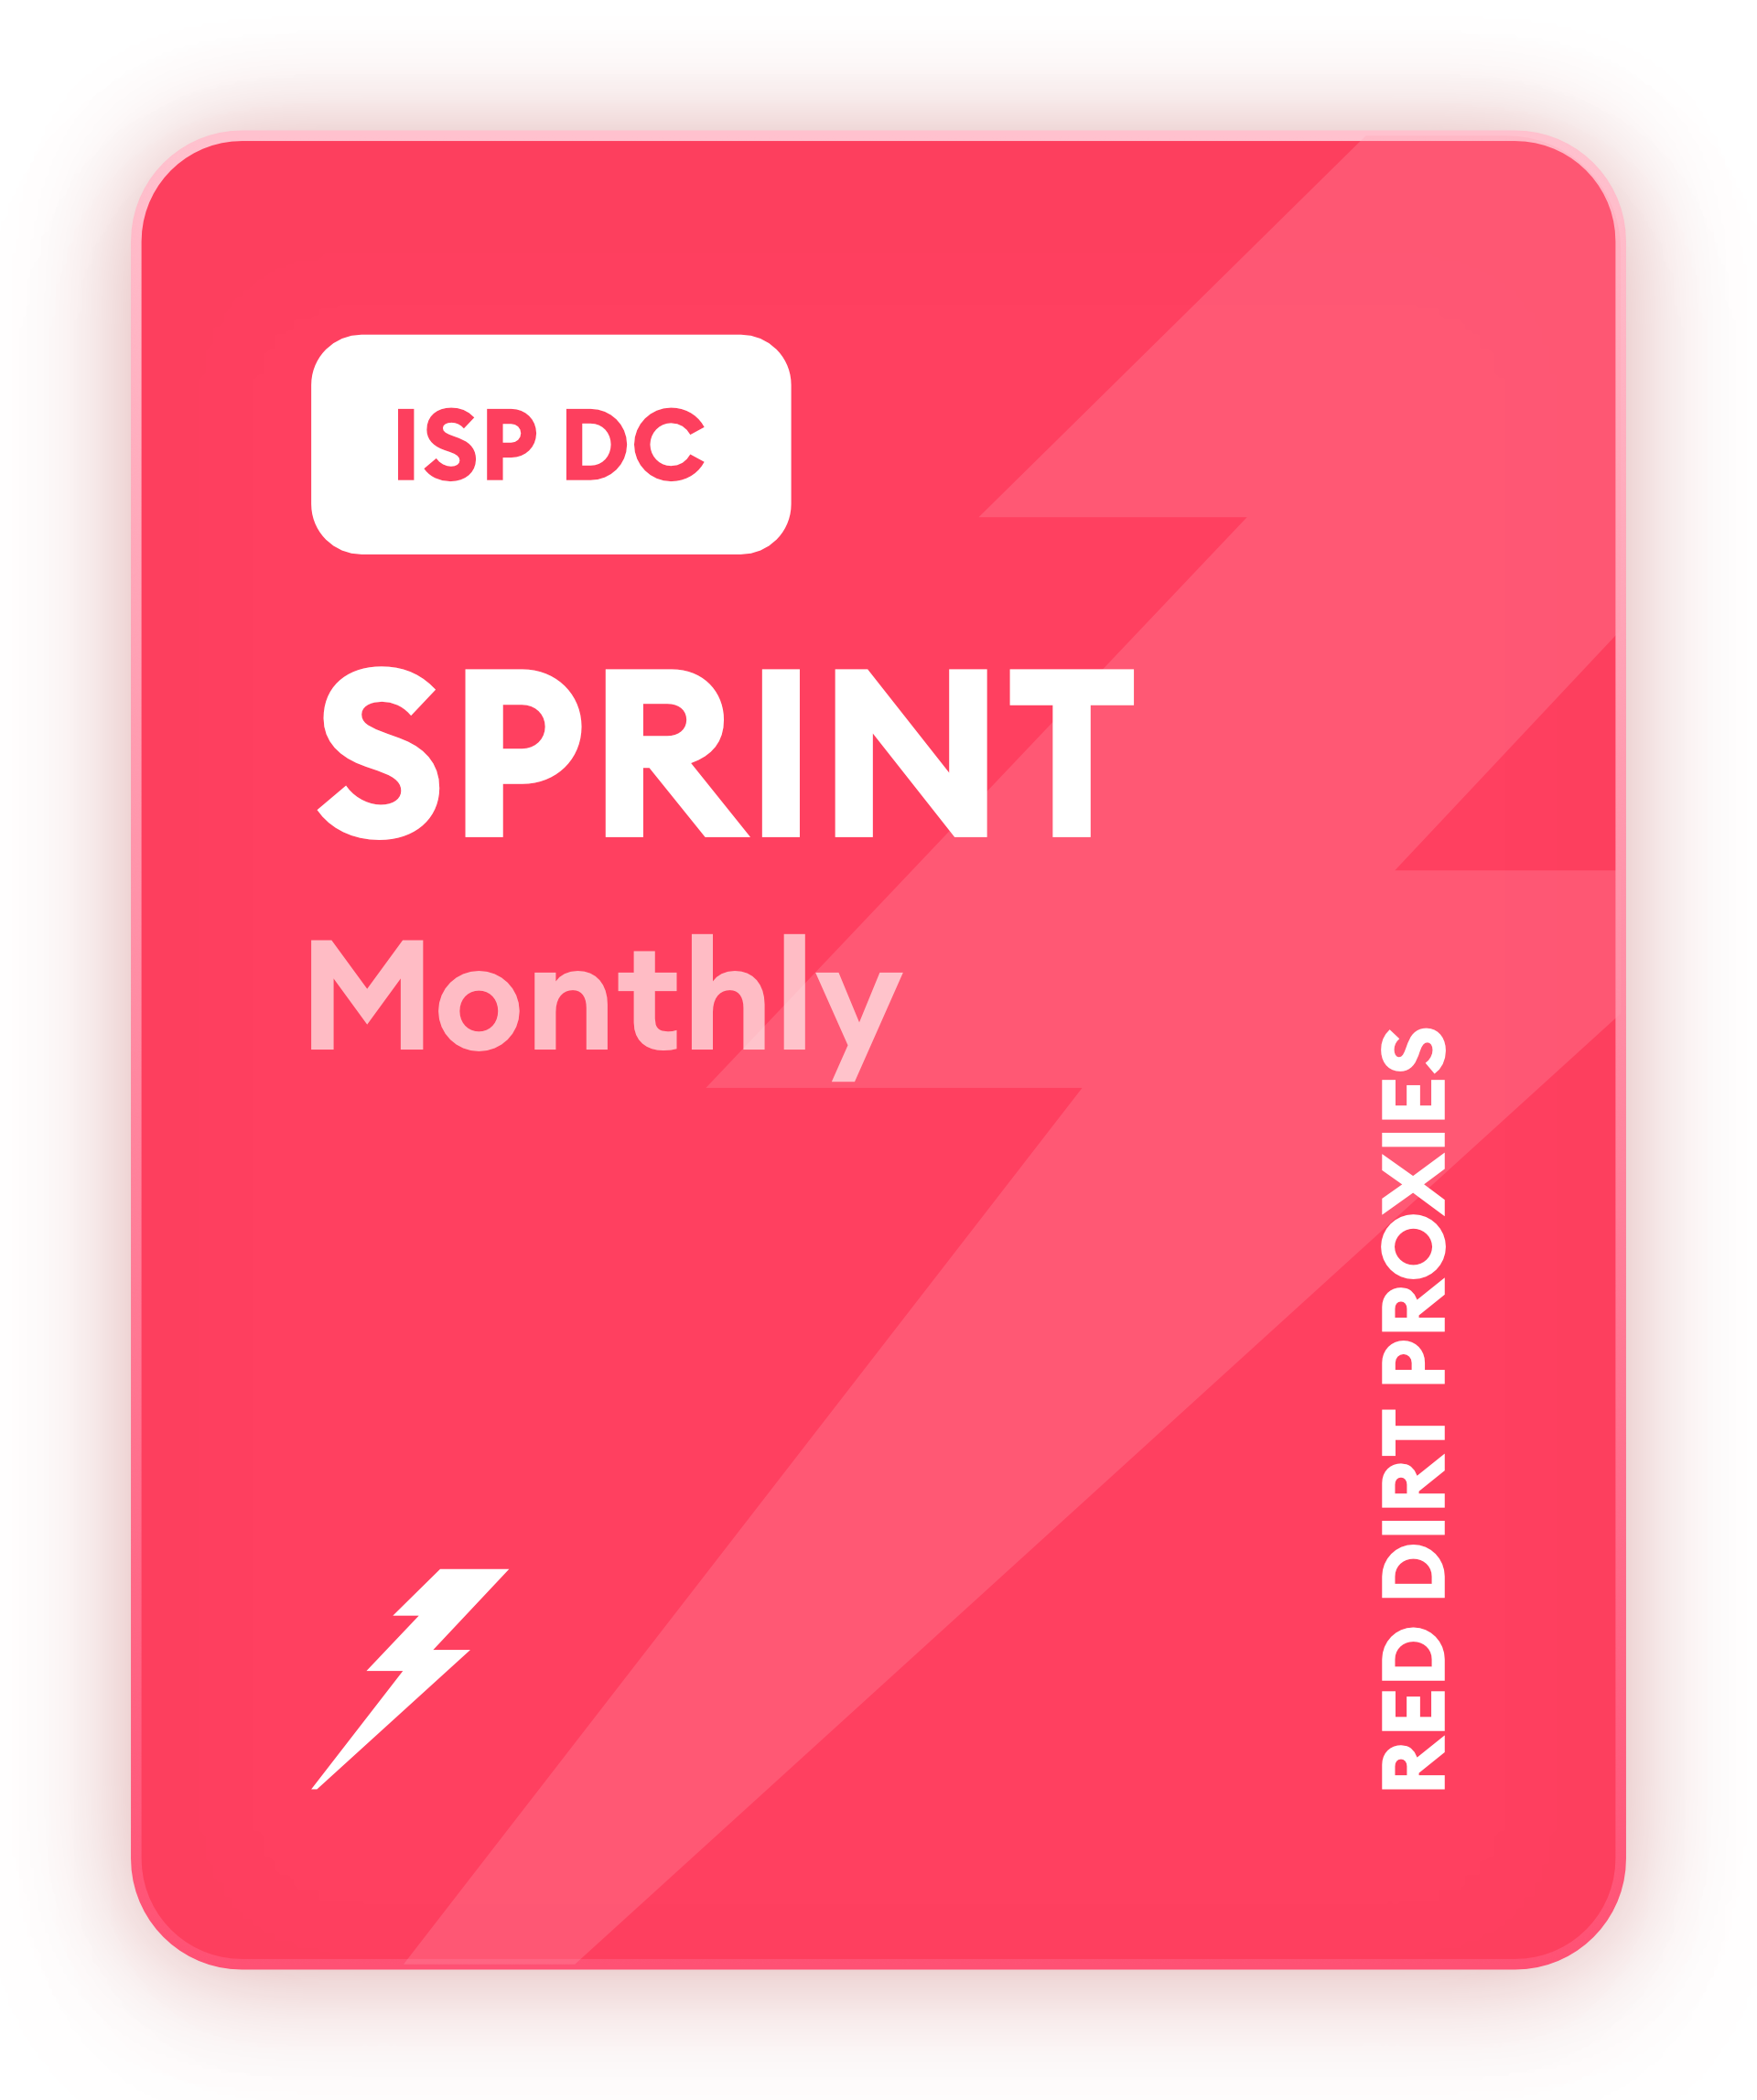 SPRINT-ISP MONTHLY DC PROXIES - 10 GBPS